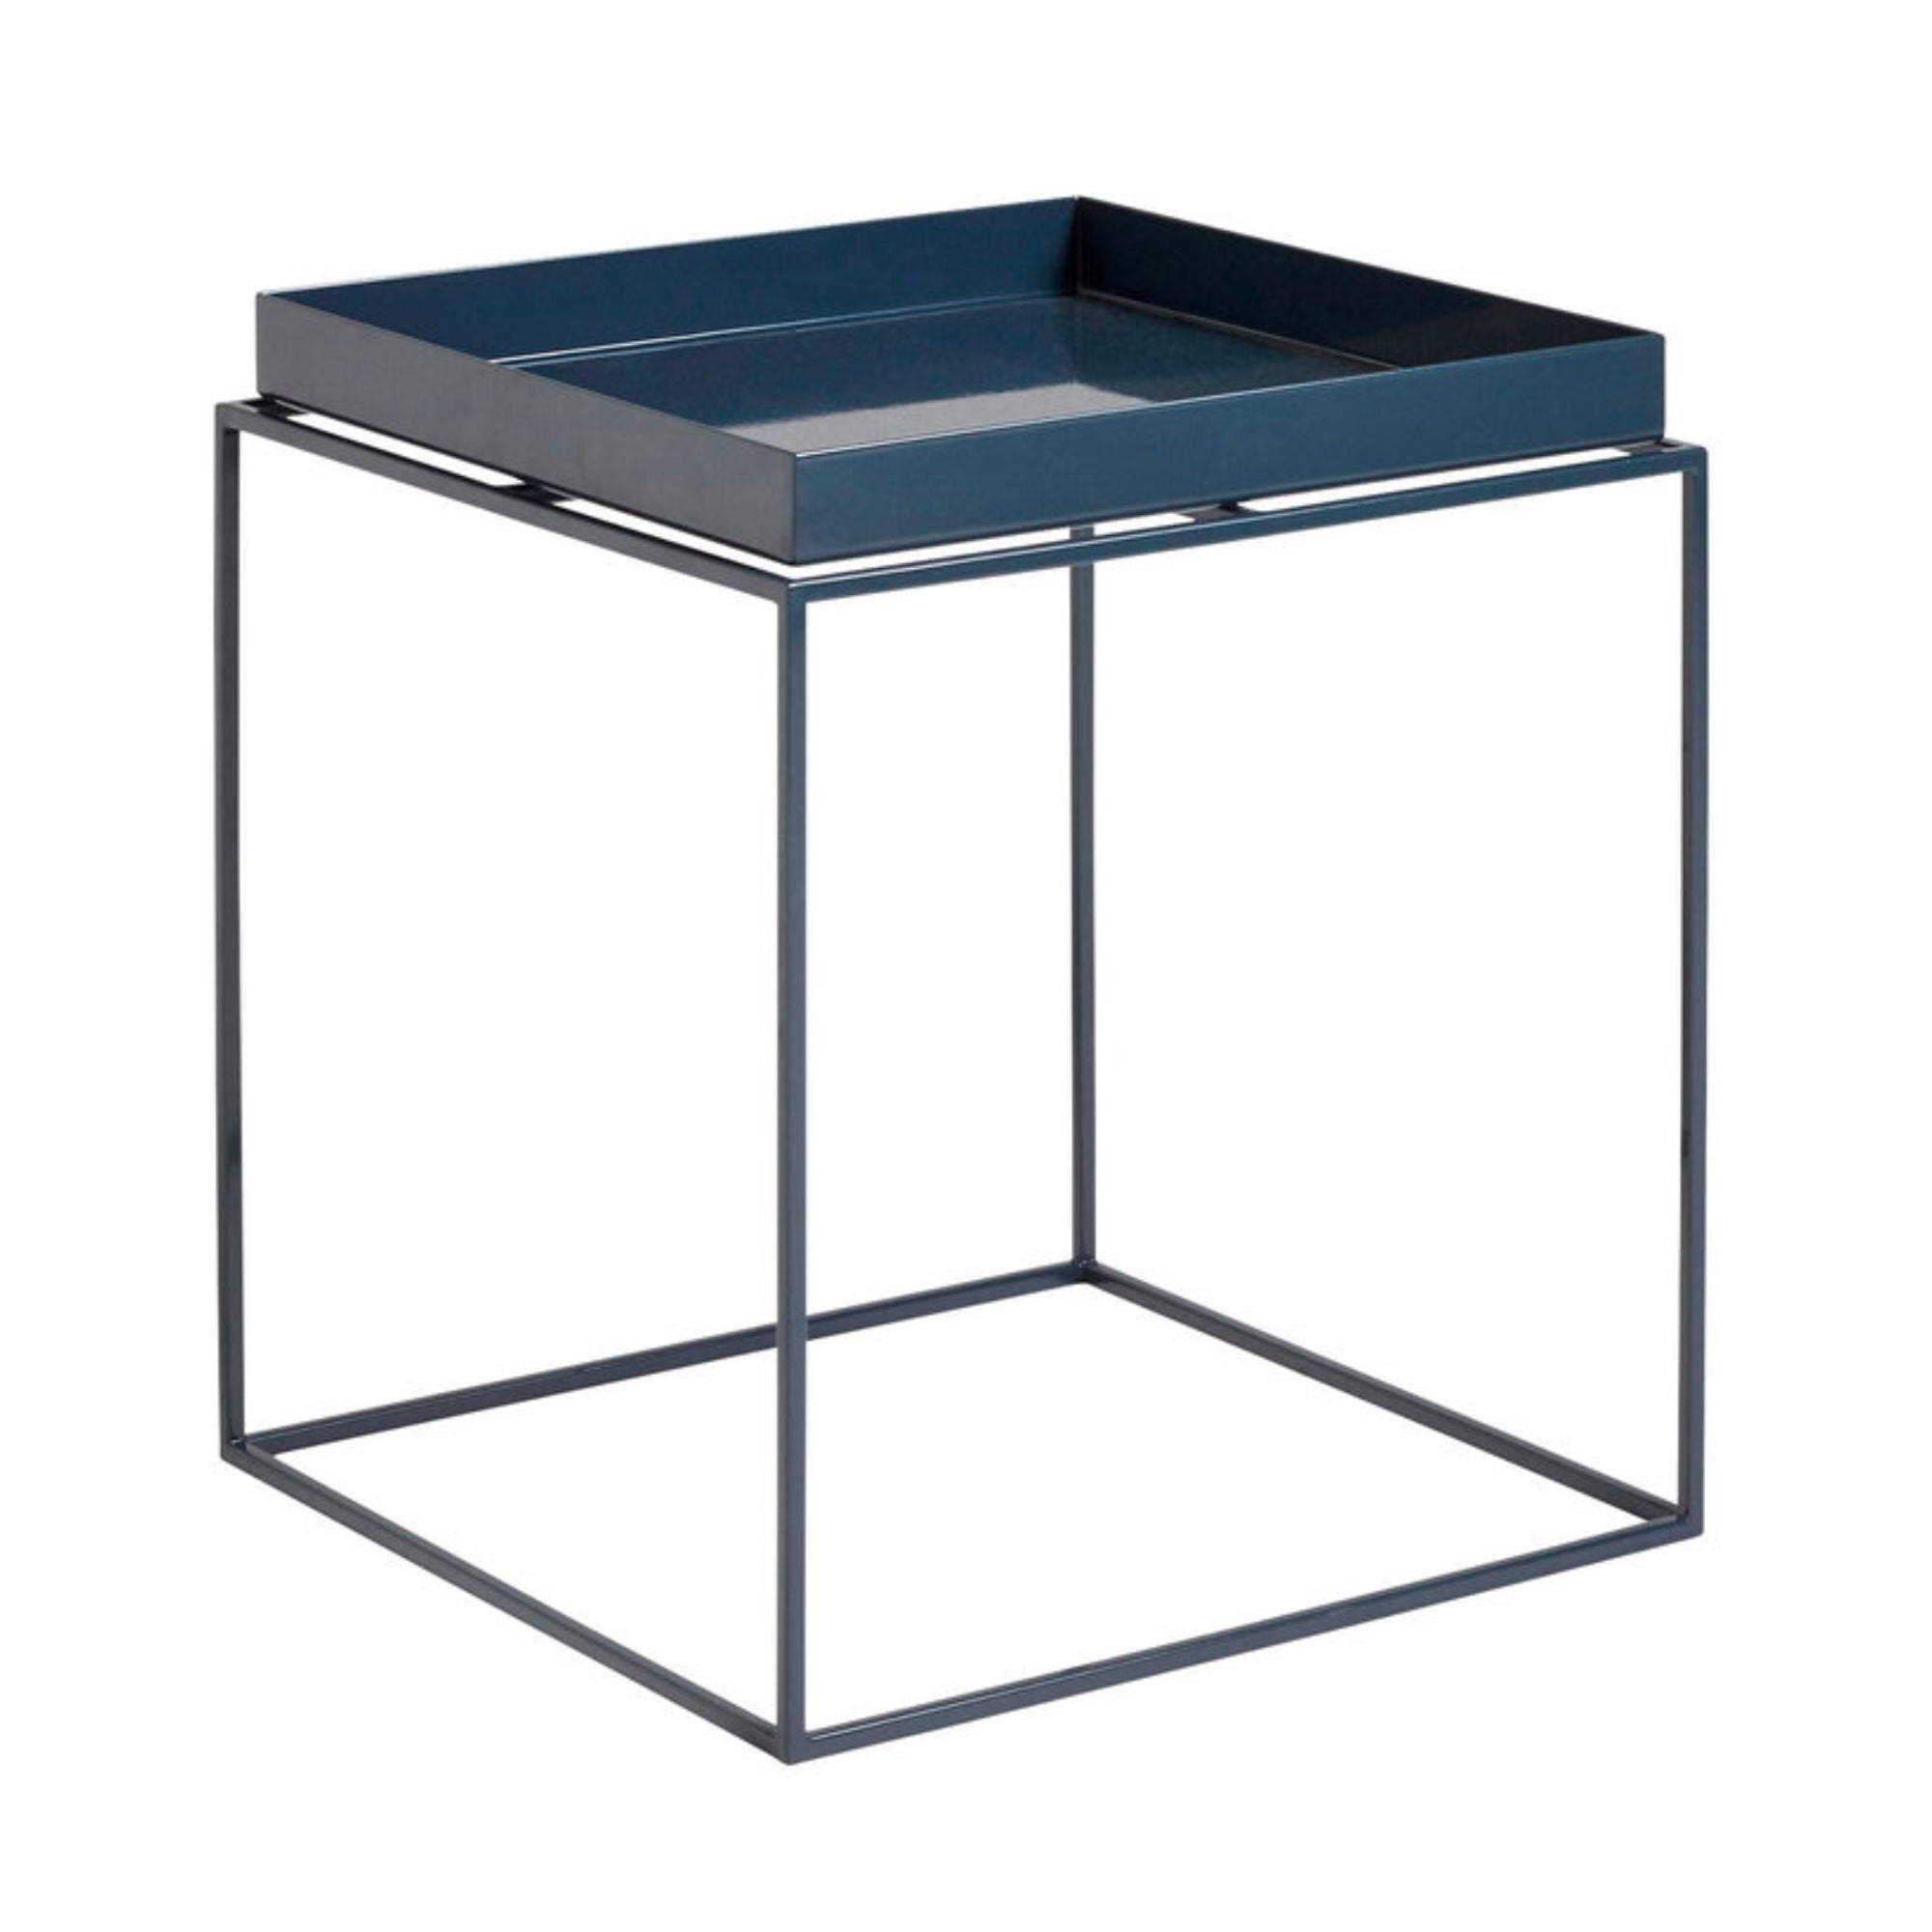 Hay Tray Table Side Table M , Deep Blue High Gloss